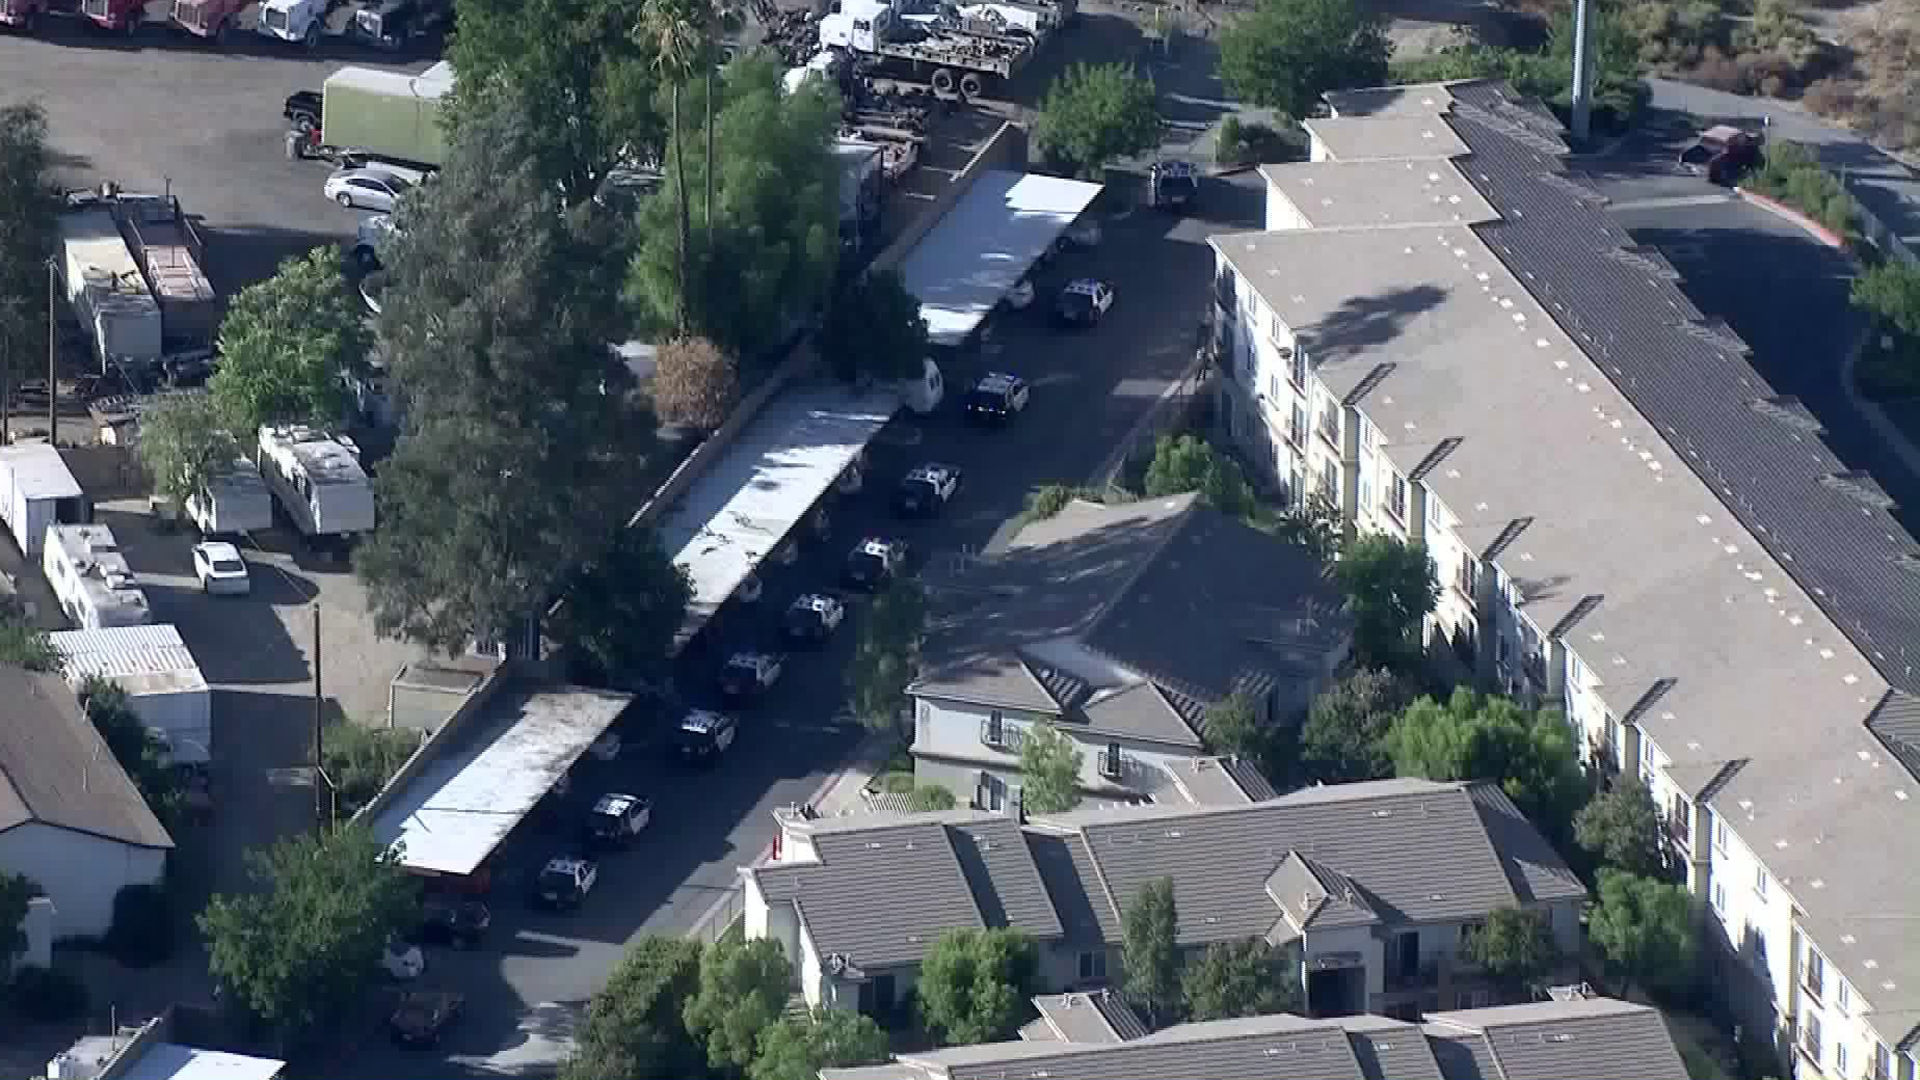 Patrol cars are seen outside a residential complex in Castaic on Sept. 14, 2018. (Credit: KTLA)